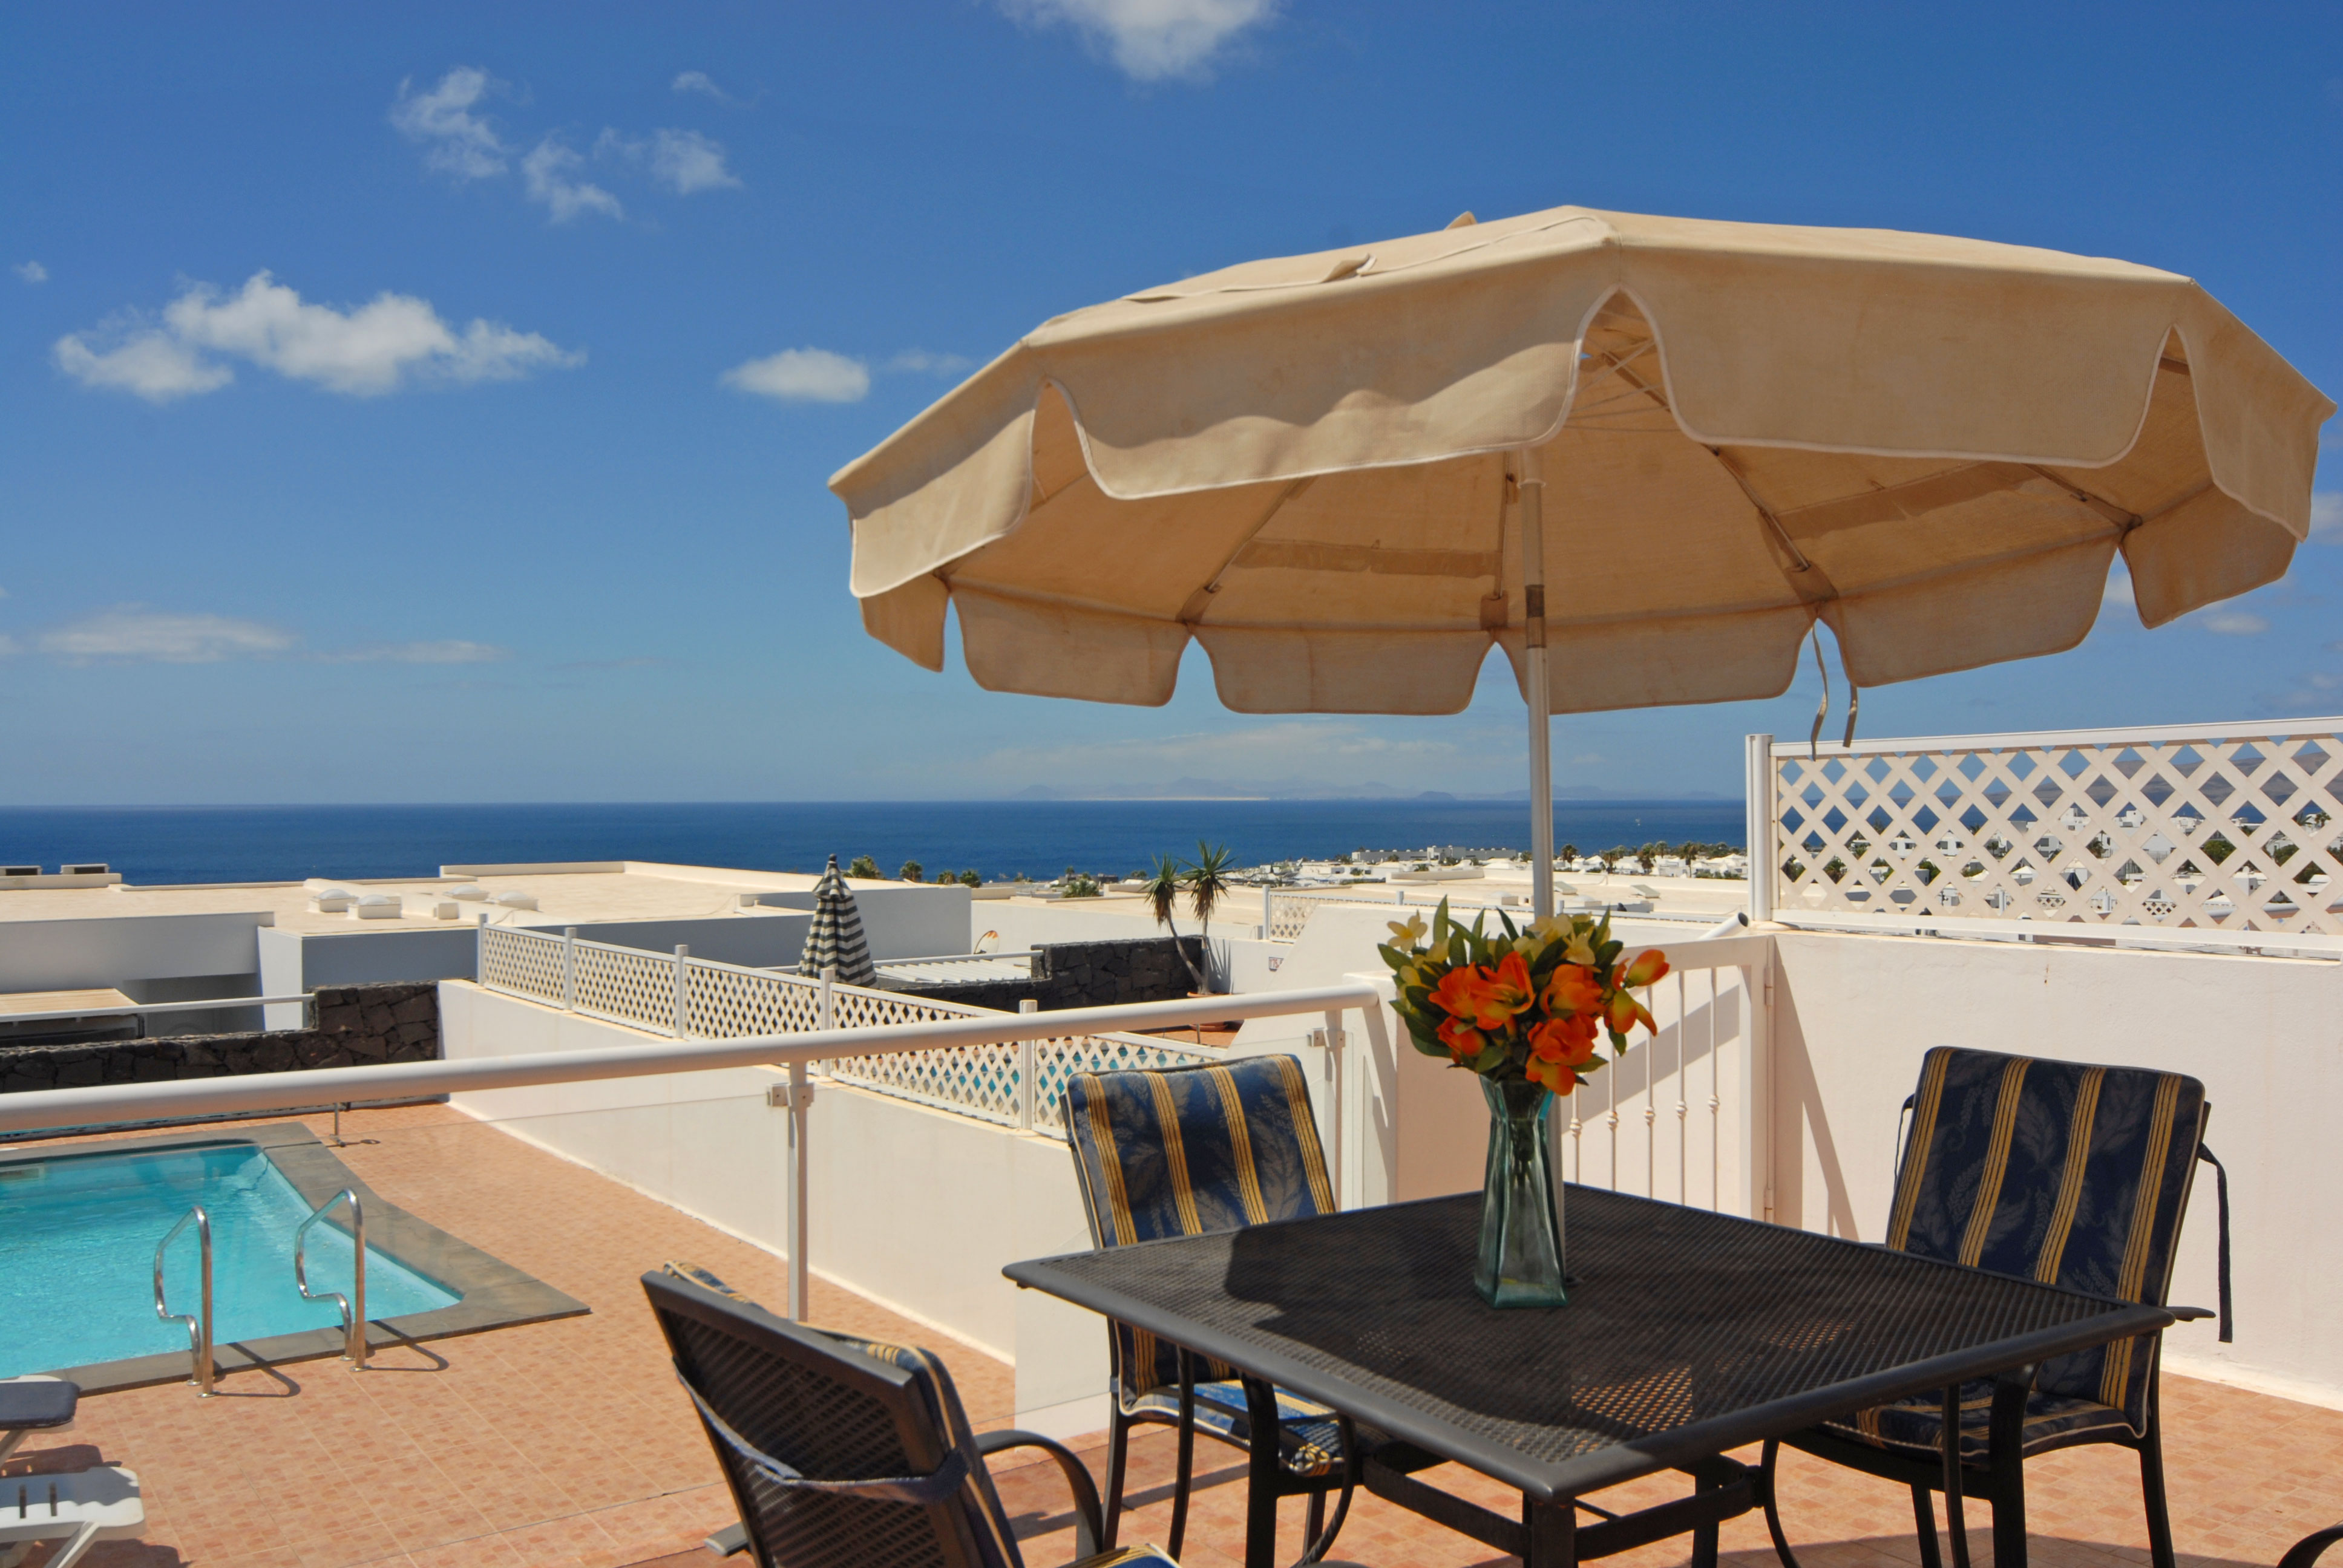 Puerto del Carmen Holiday Villa with fantastic views